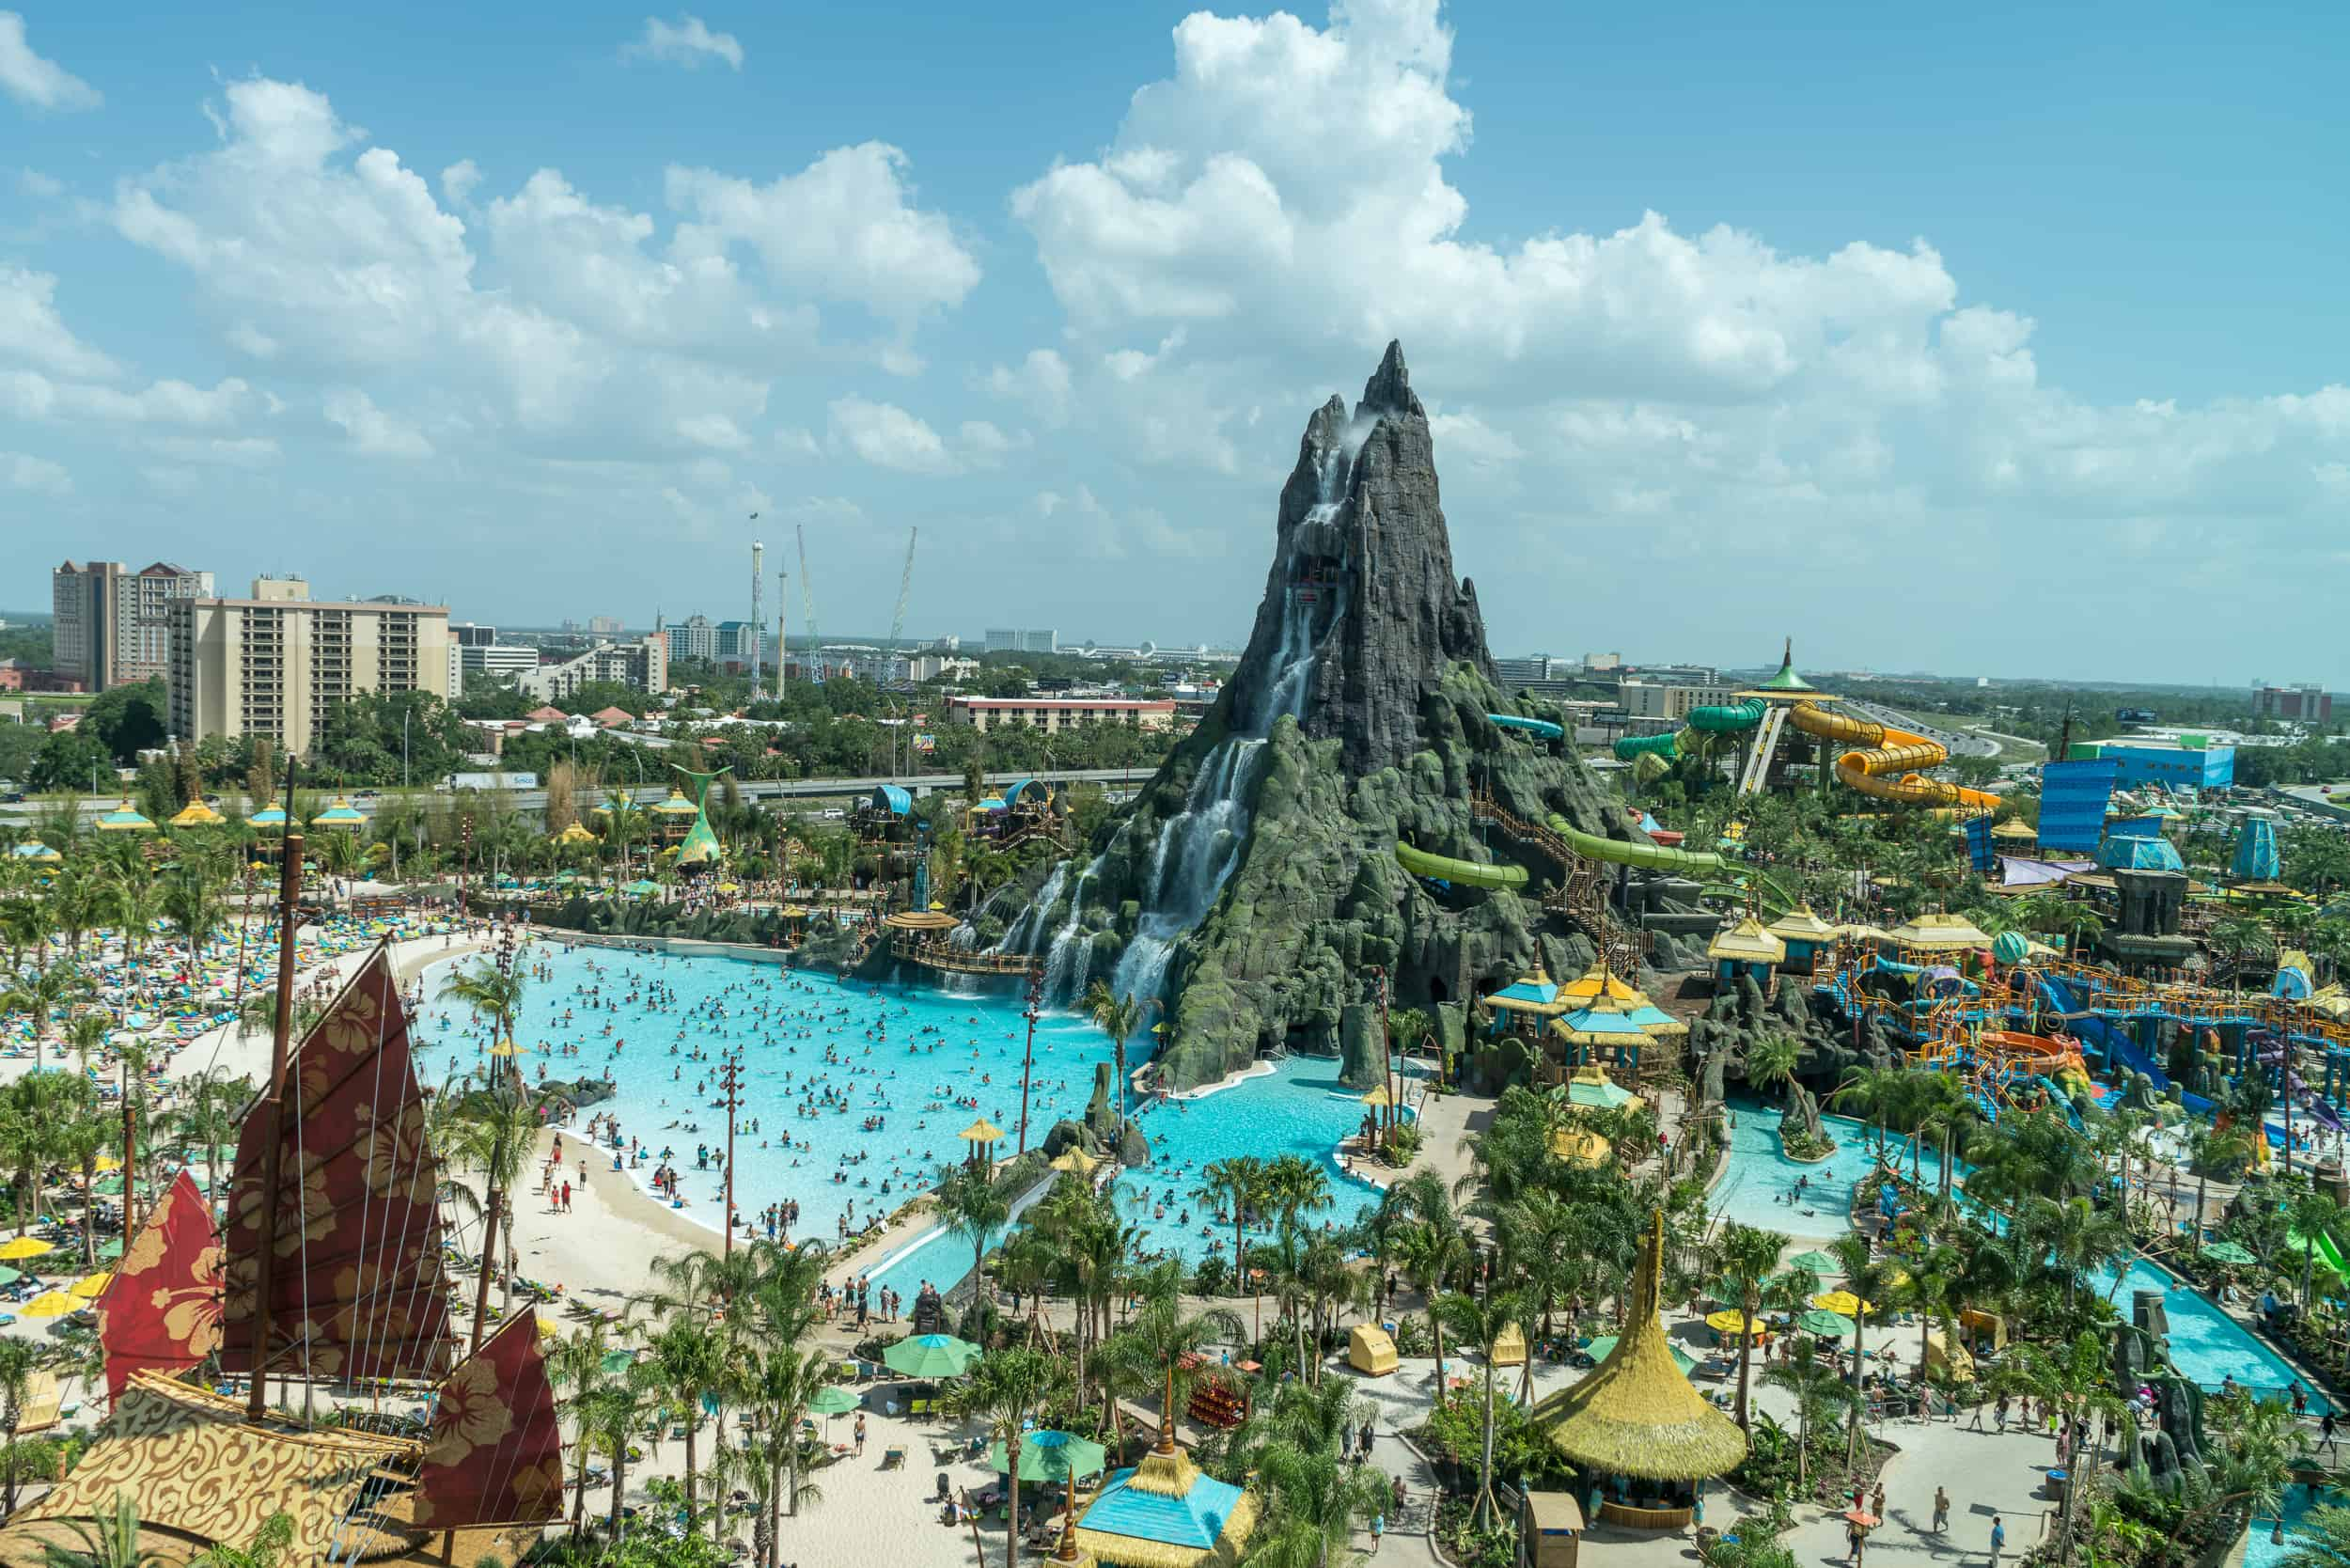 The best Orlando water parks